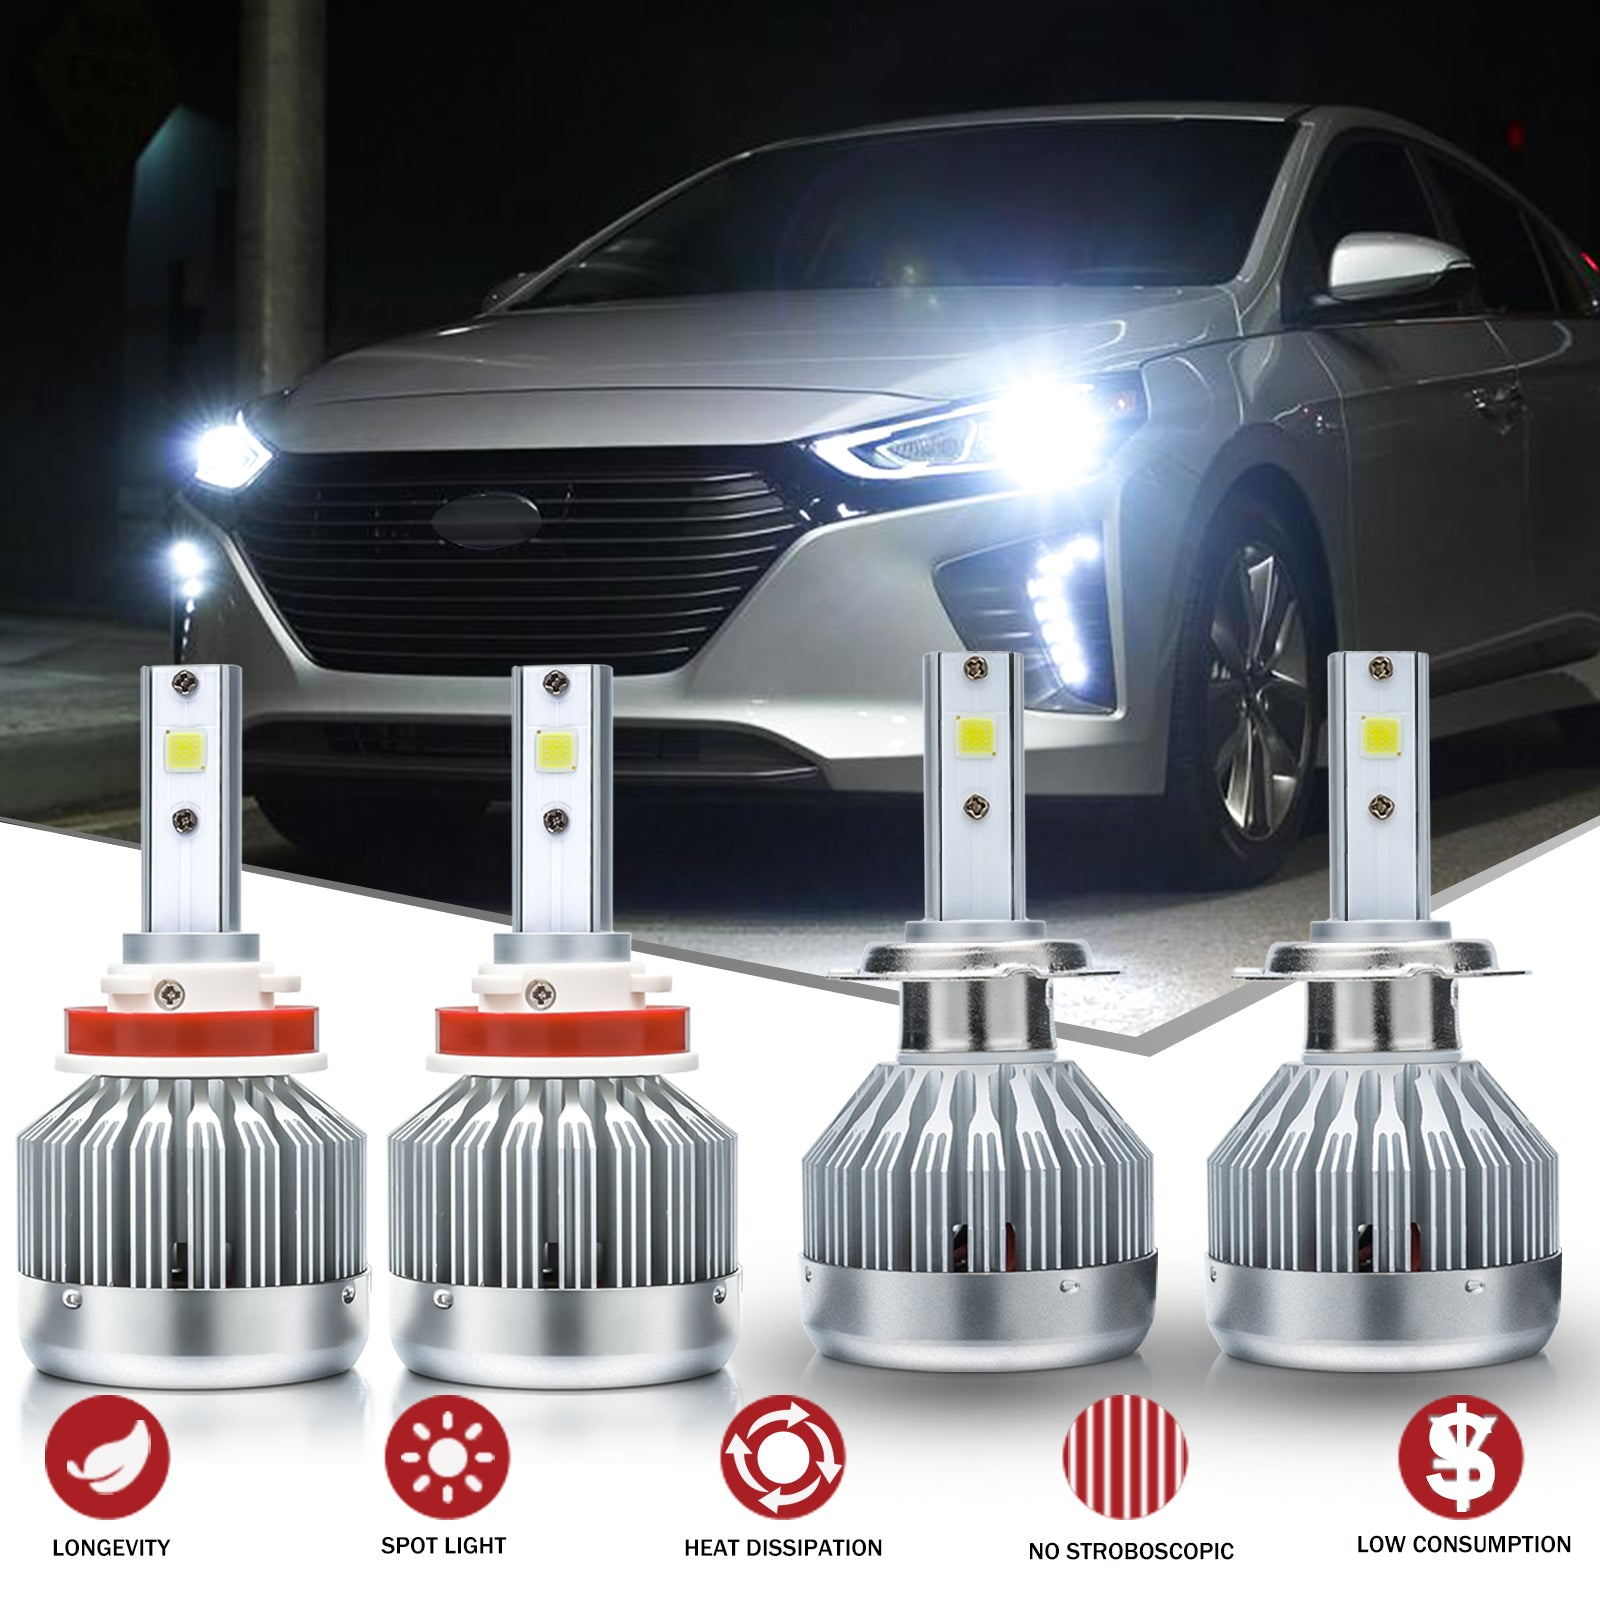 LED Headlight Bulb High Beam Kit 9005 6000k White For 2018 19 Hyundai Elantra GT